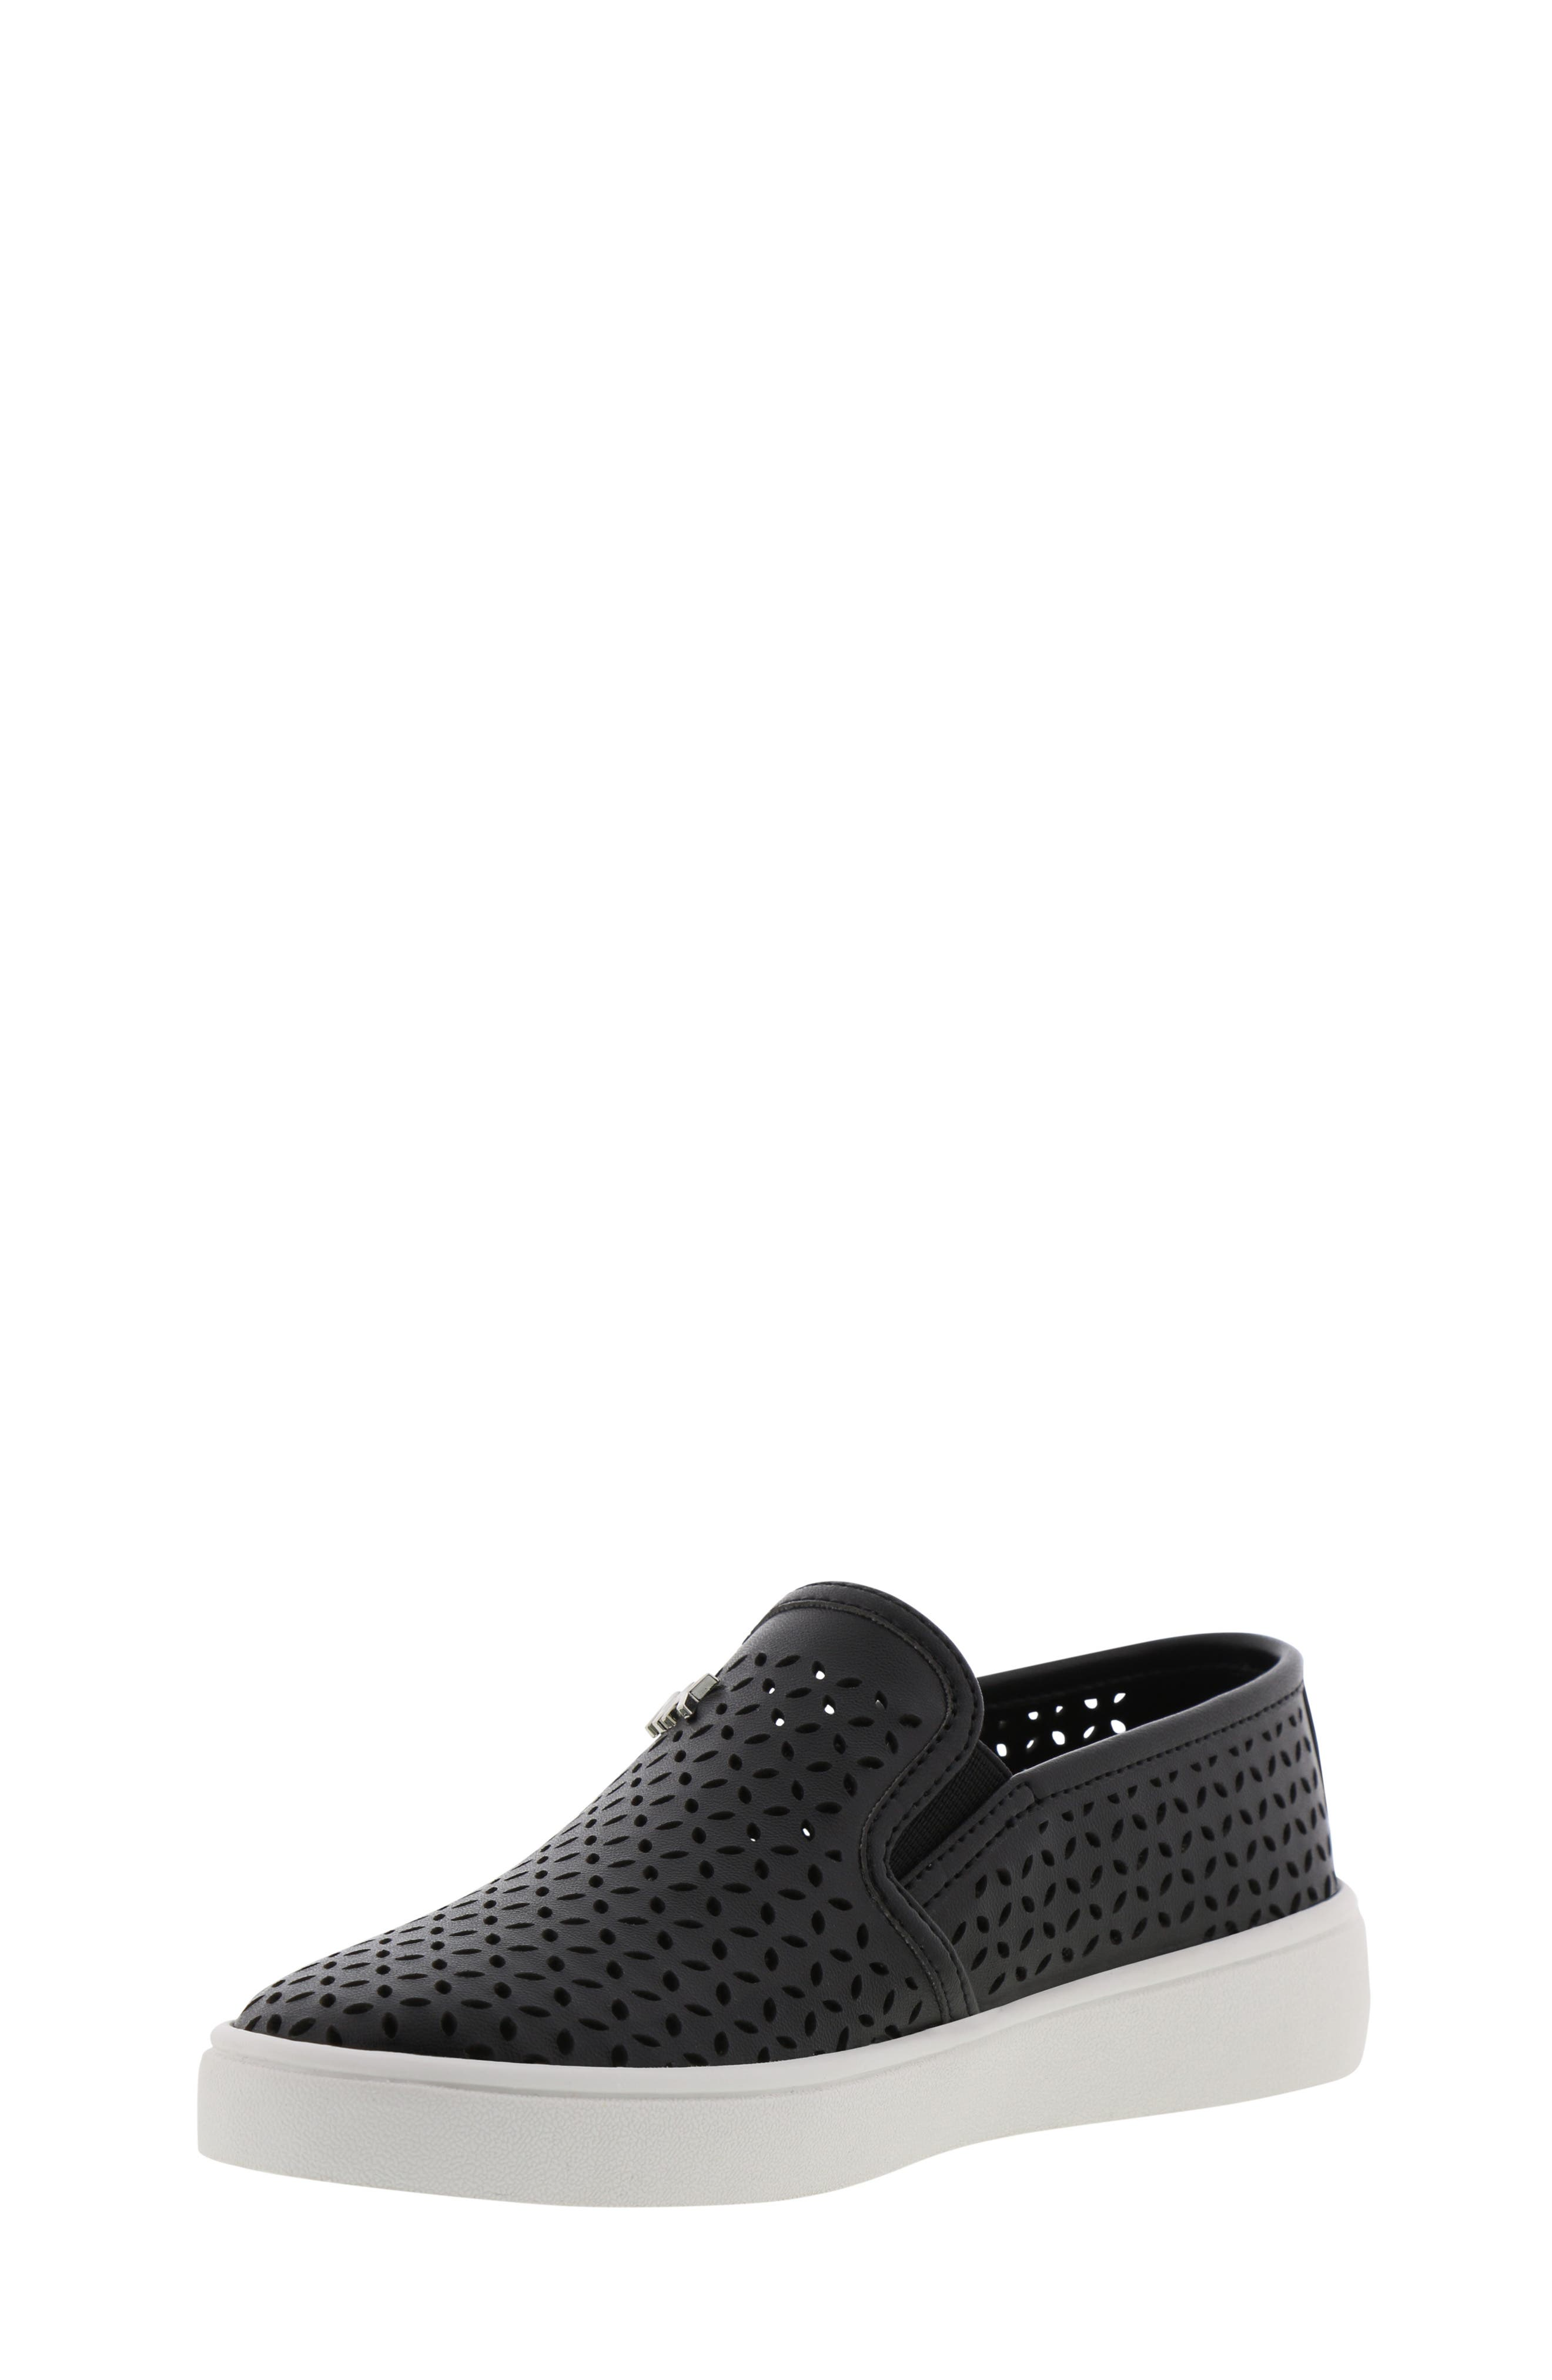 MICHAEL MICHAEL KORS, Jem Olivia Perforated Slip-On Sneaker, Alternate thumbnail 9, color, BLACK